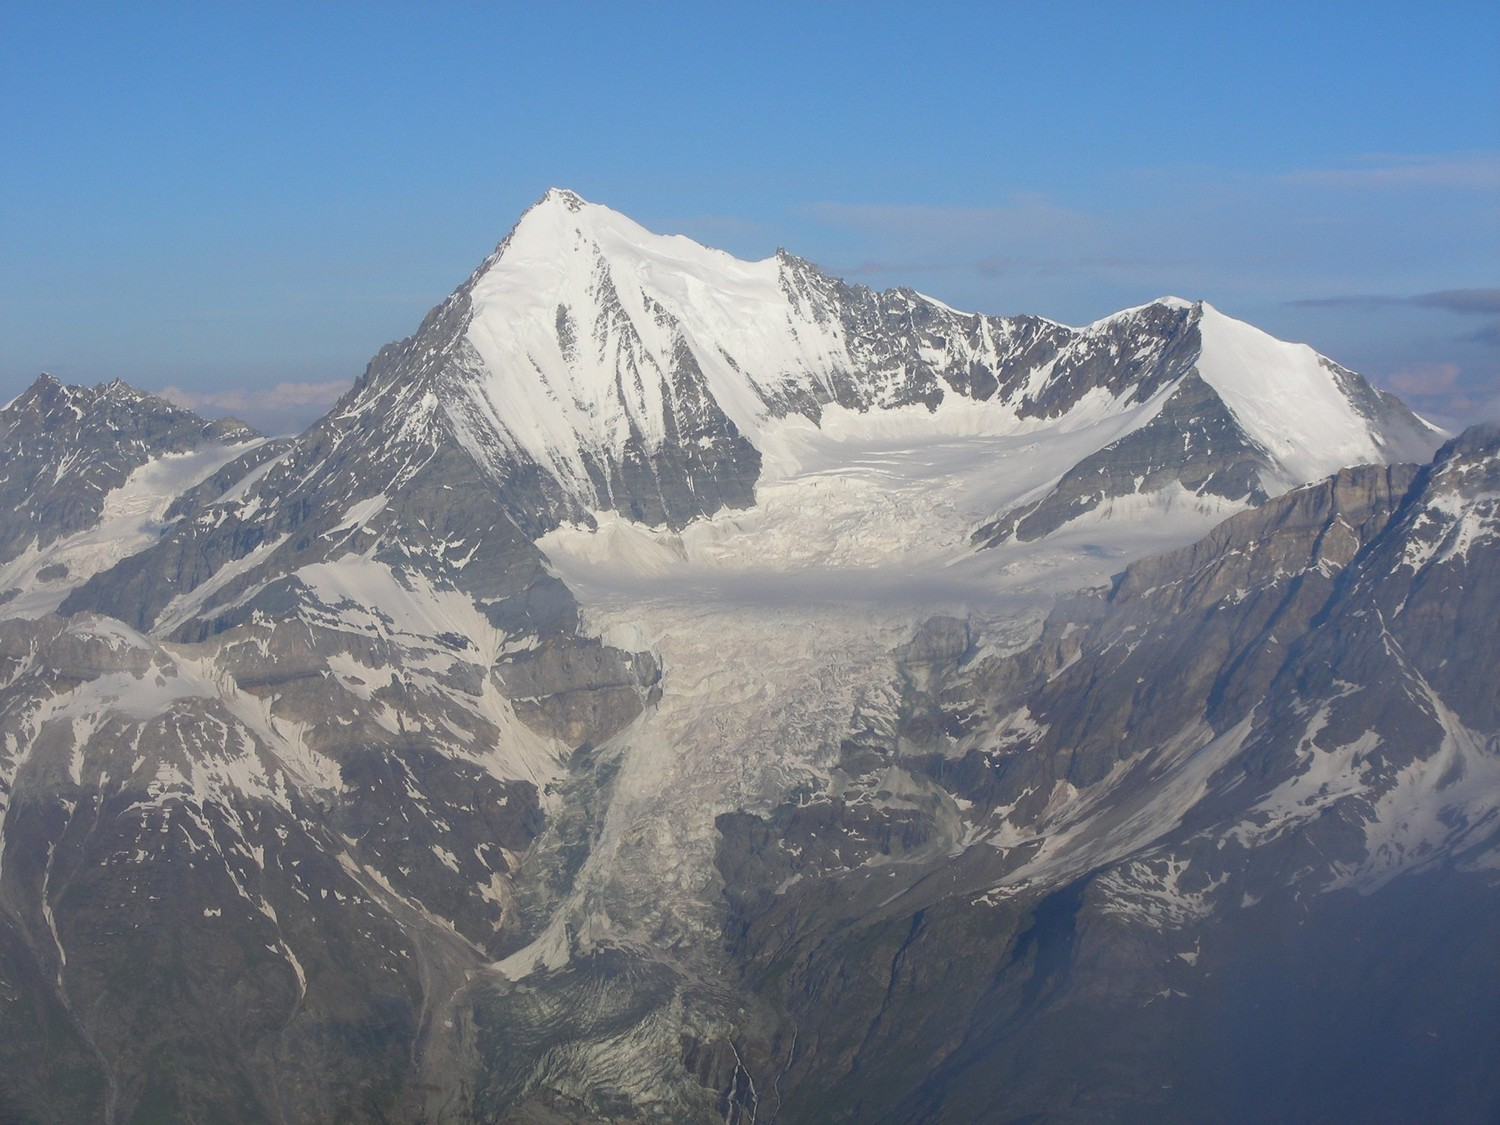 Weisshorn (left) and Bishorn (right), seen from the Dirrujoch pass